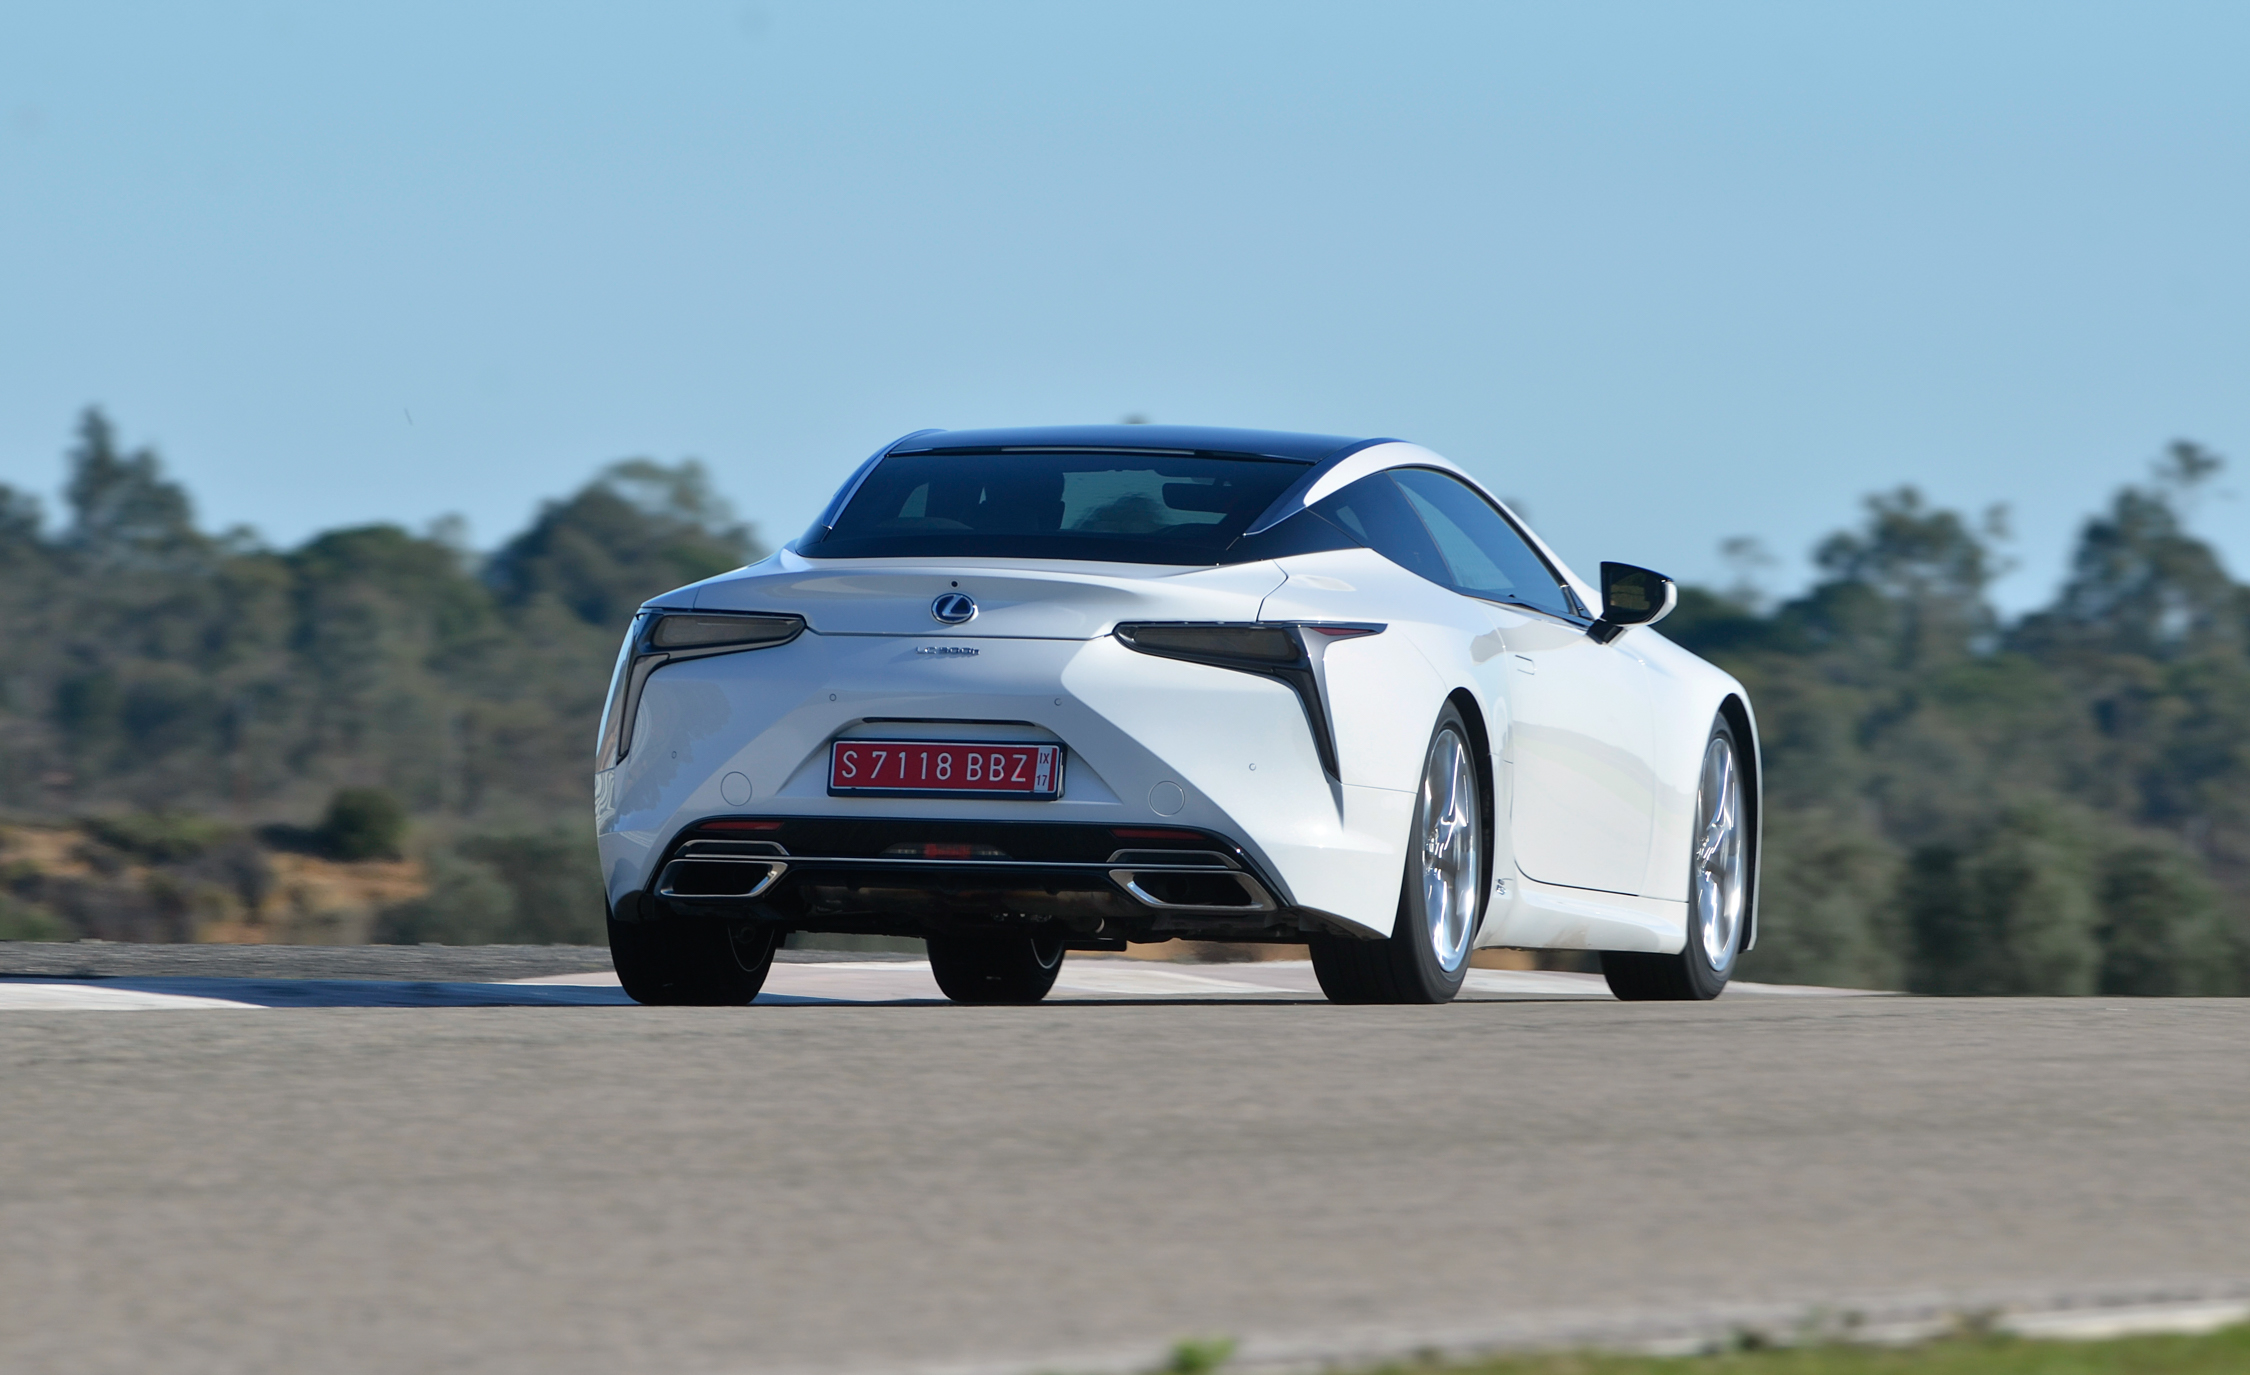 2018 Lexus Lc 500h White Test Drive Rear And Side View (Photo 67 of 84)